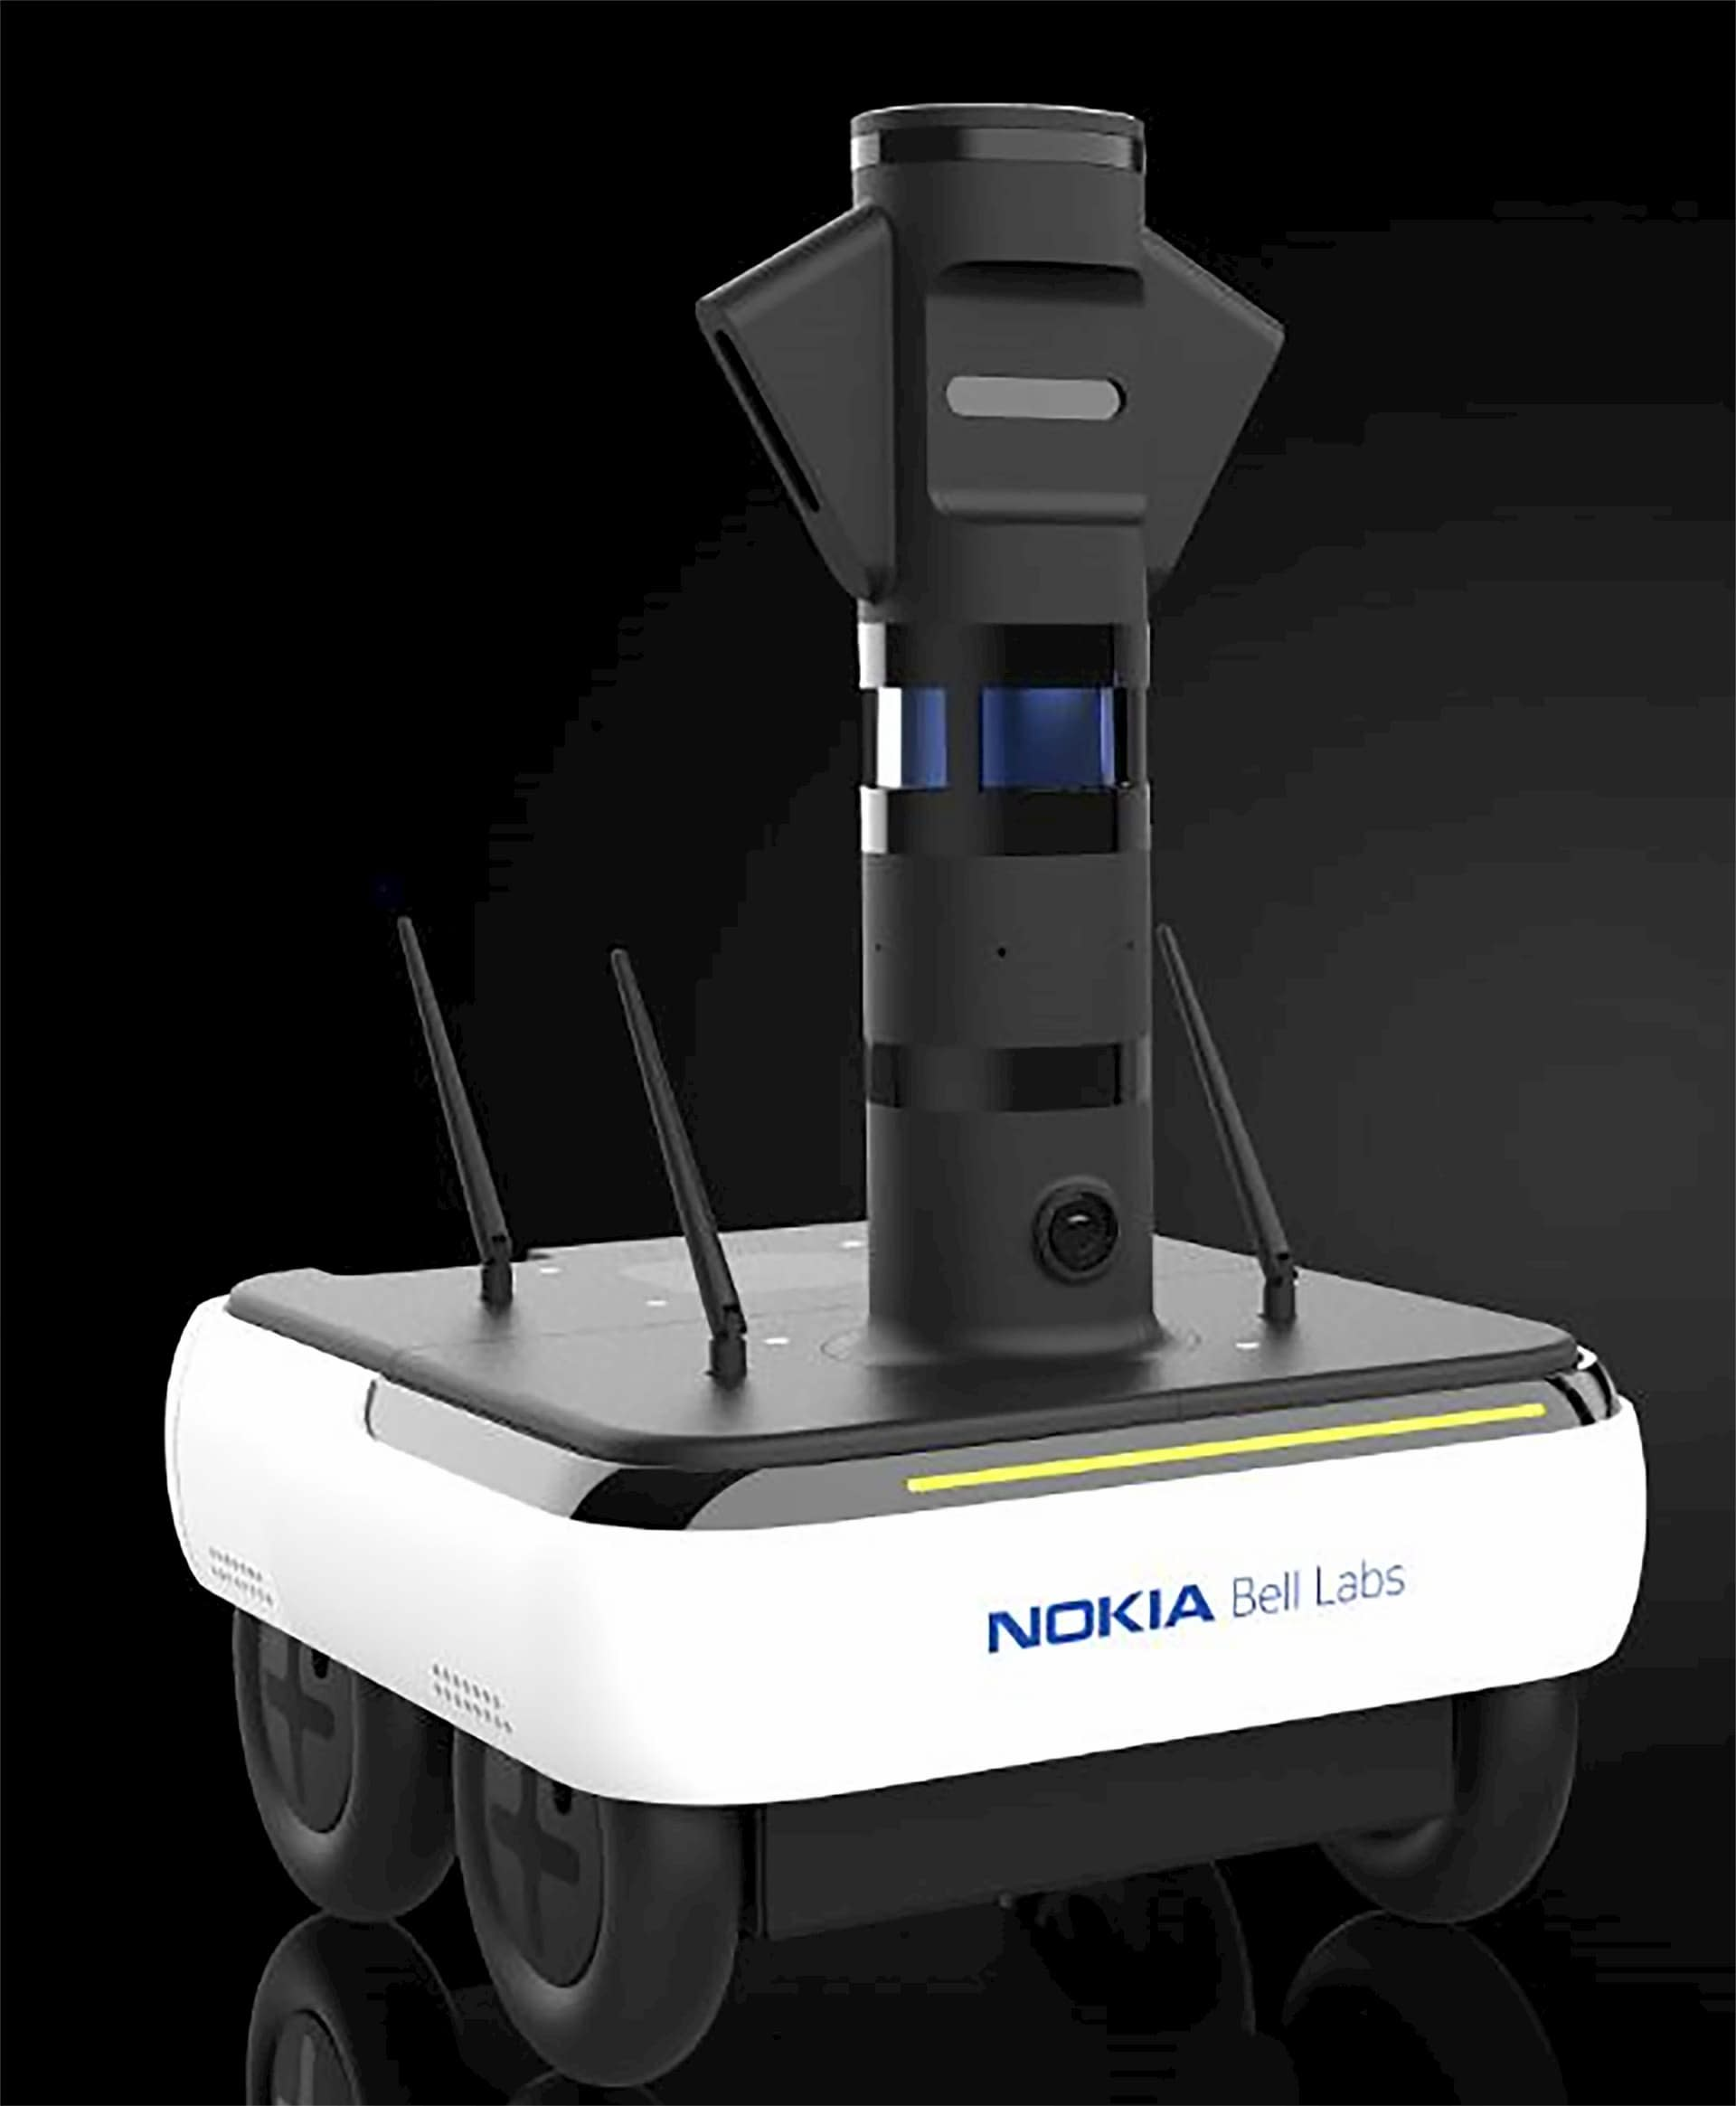 — Nokia Bell Labs